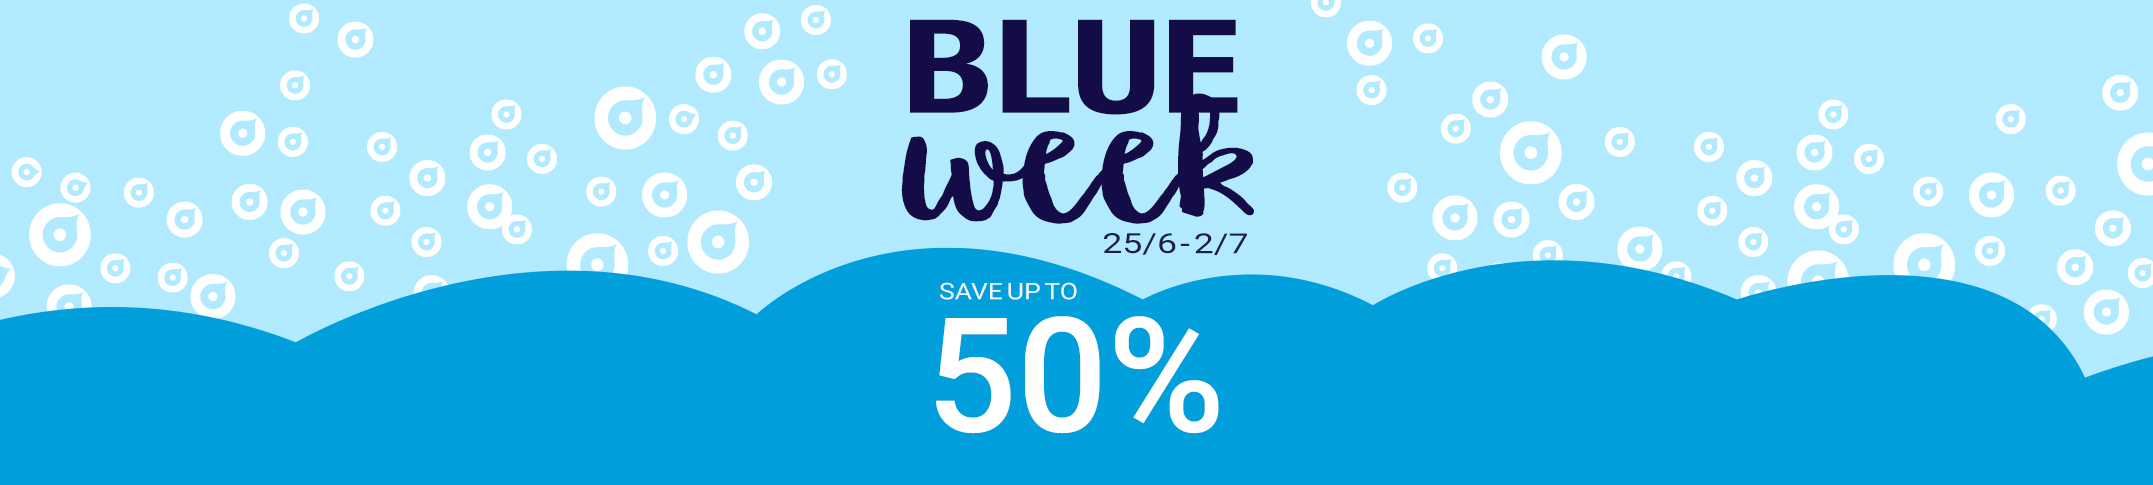 Blue Week - don't miss our super sale!